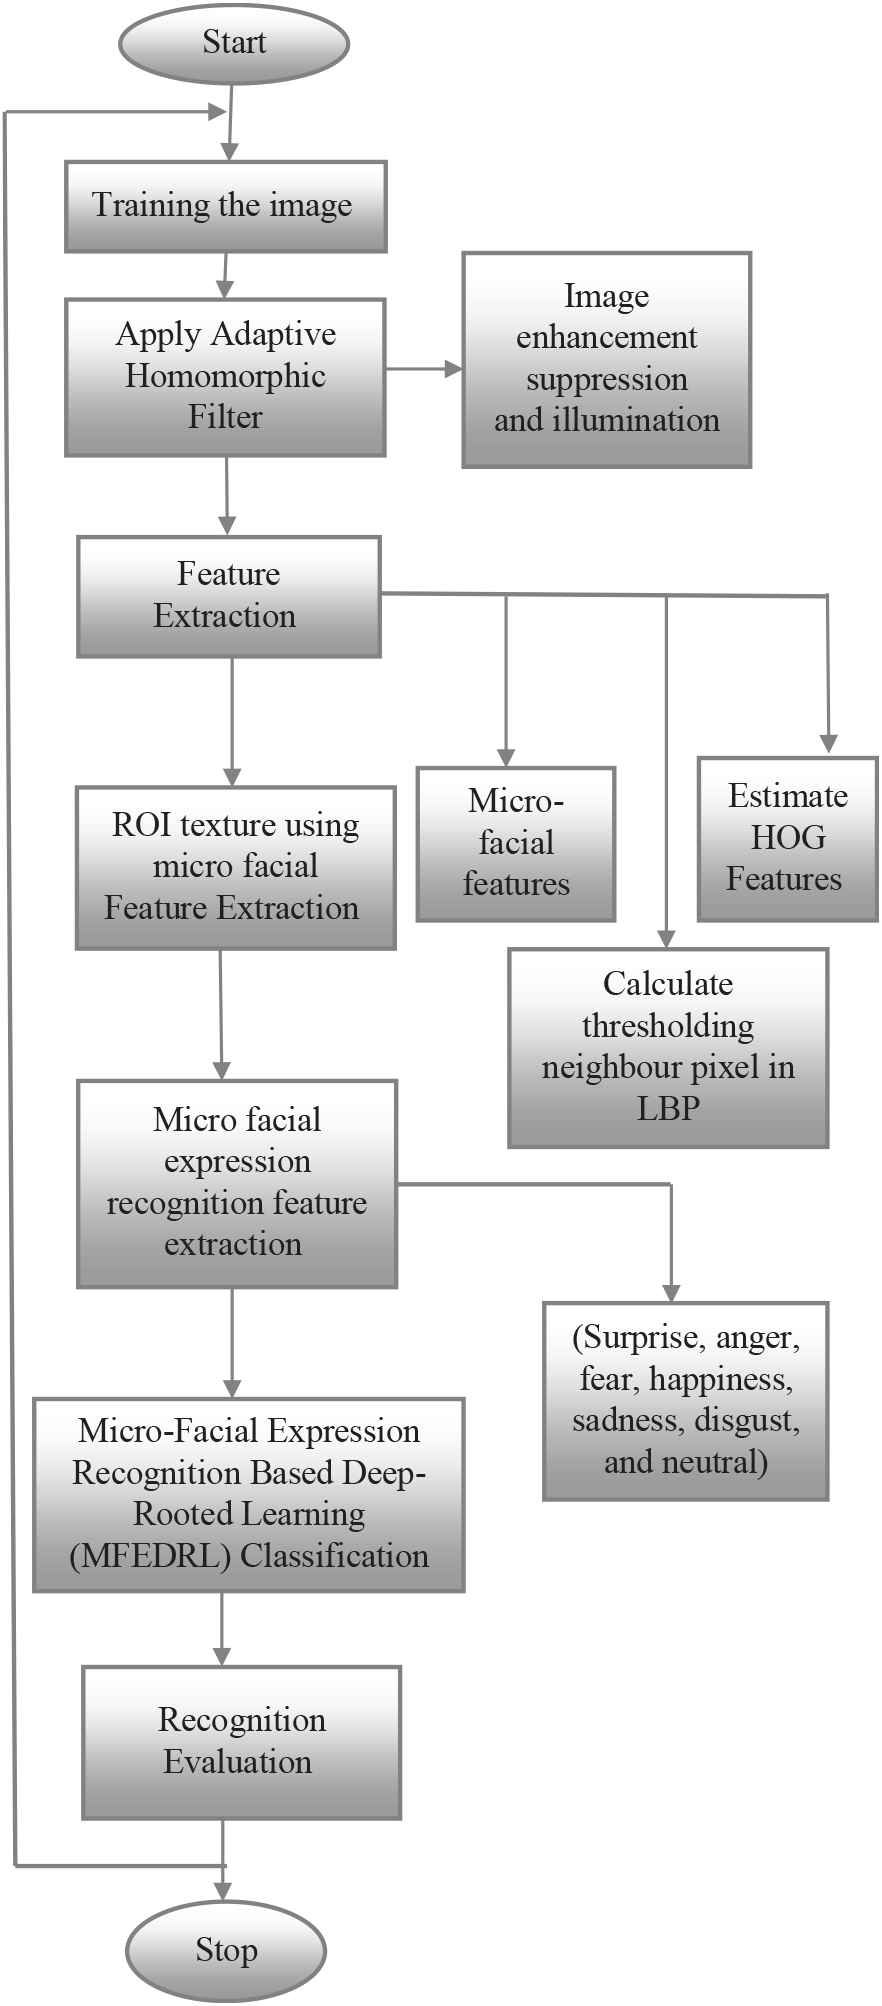 Micro-Facial Expression Recognition Based on Deep-Rooted